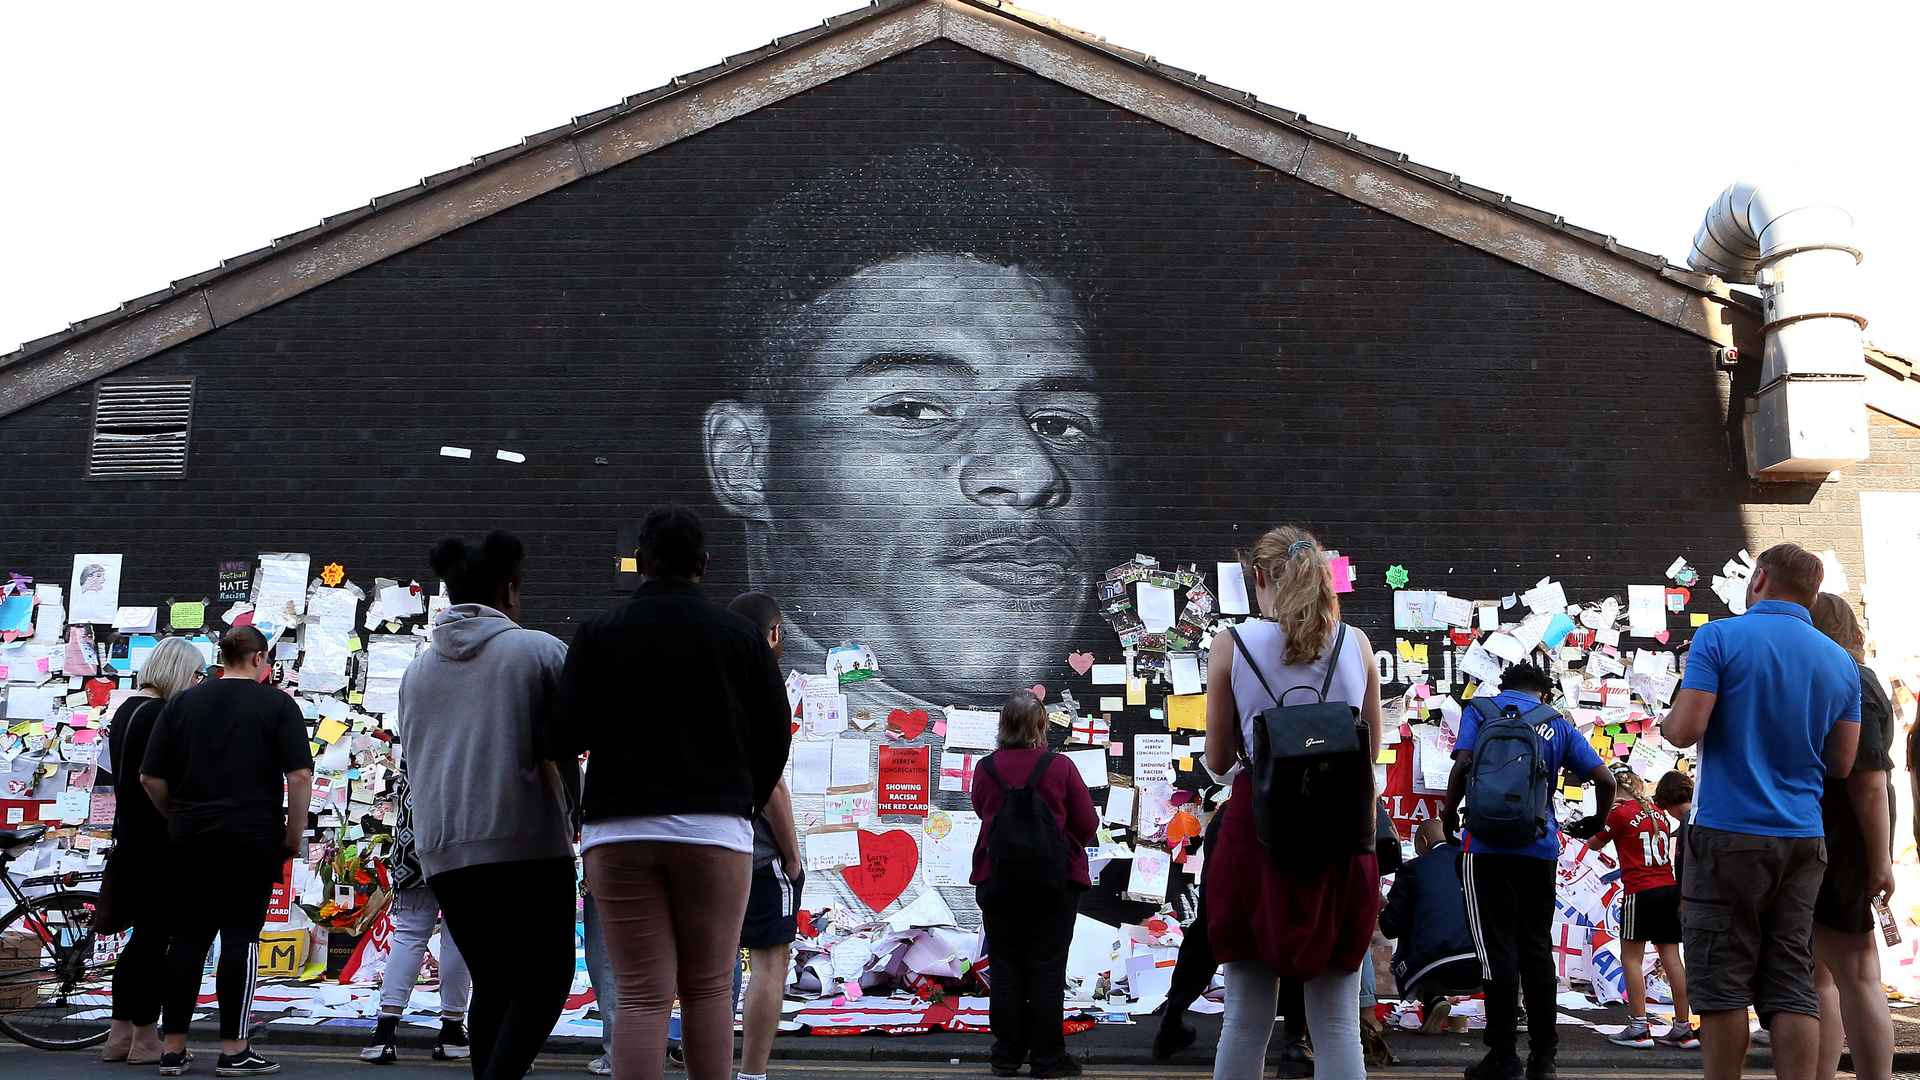 Marcus Rashford mural available to view on Google Street View